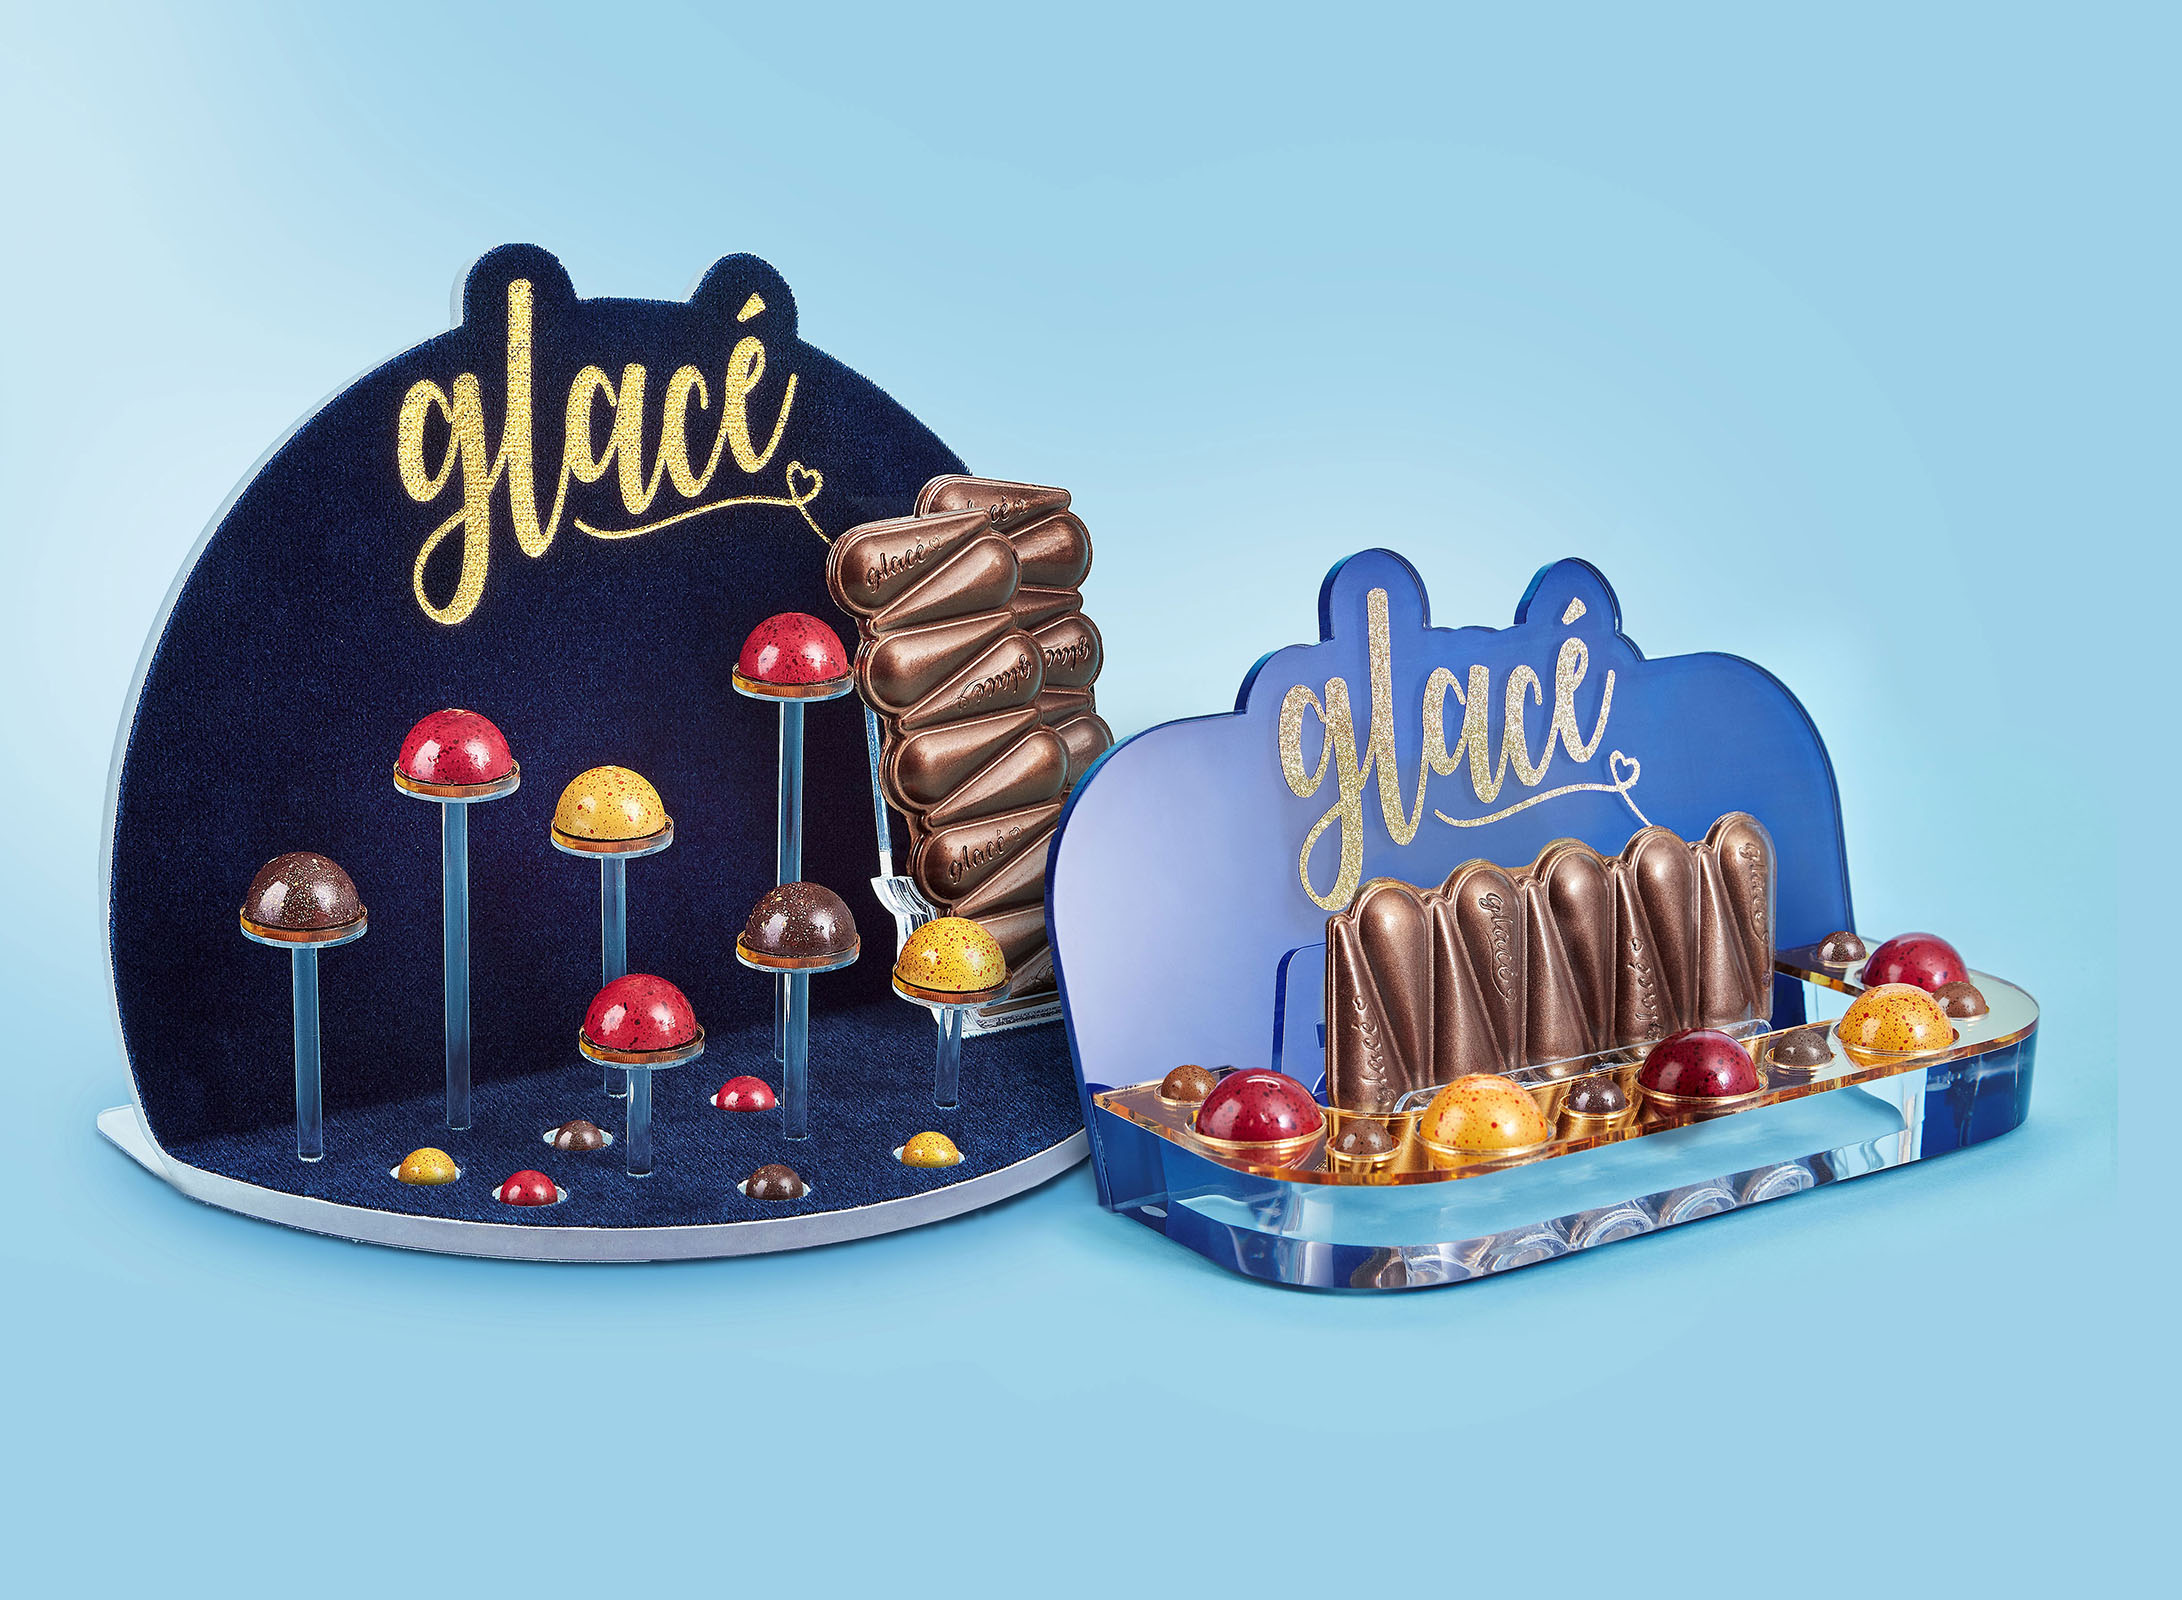 Glace both together Display